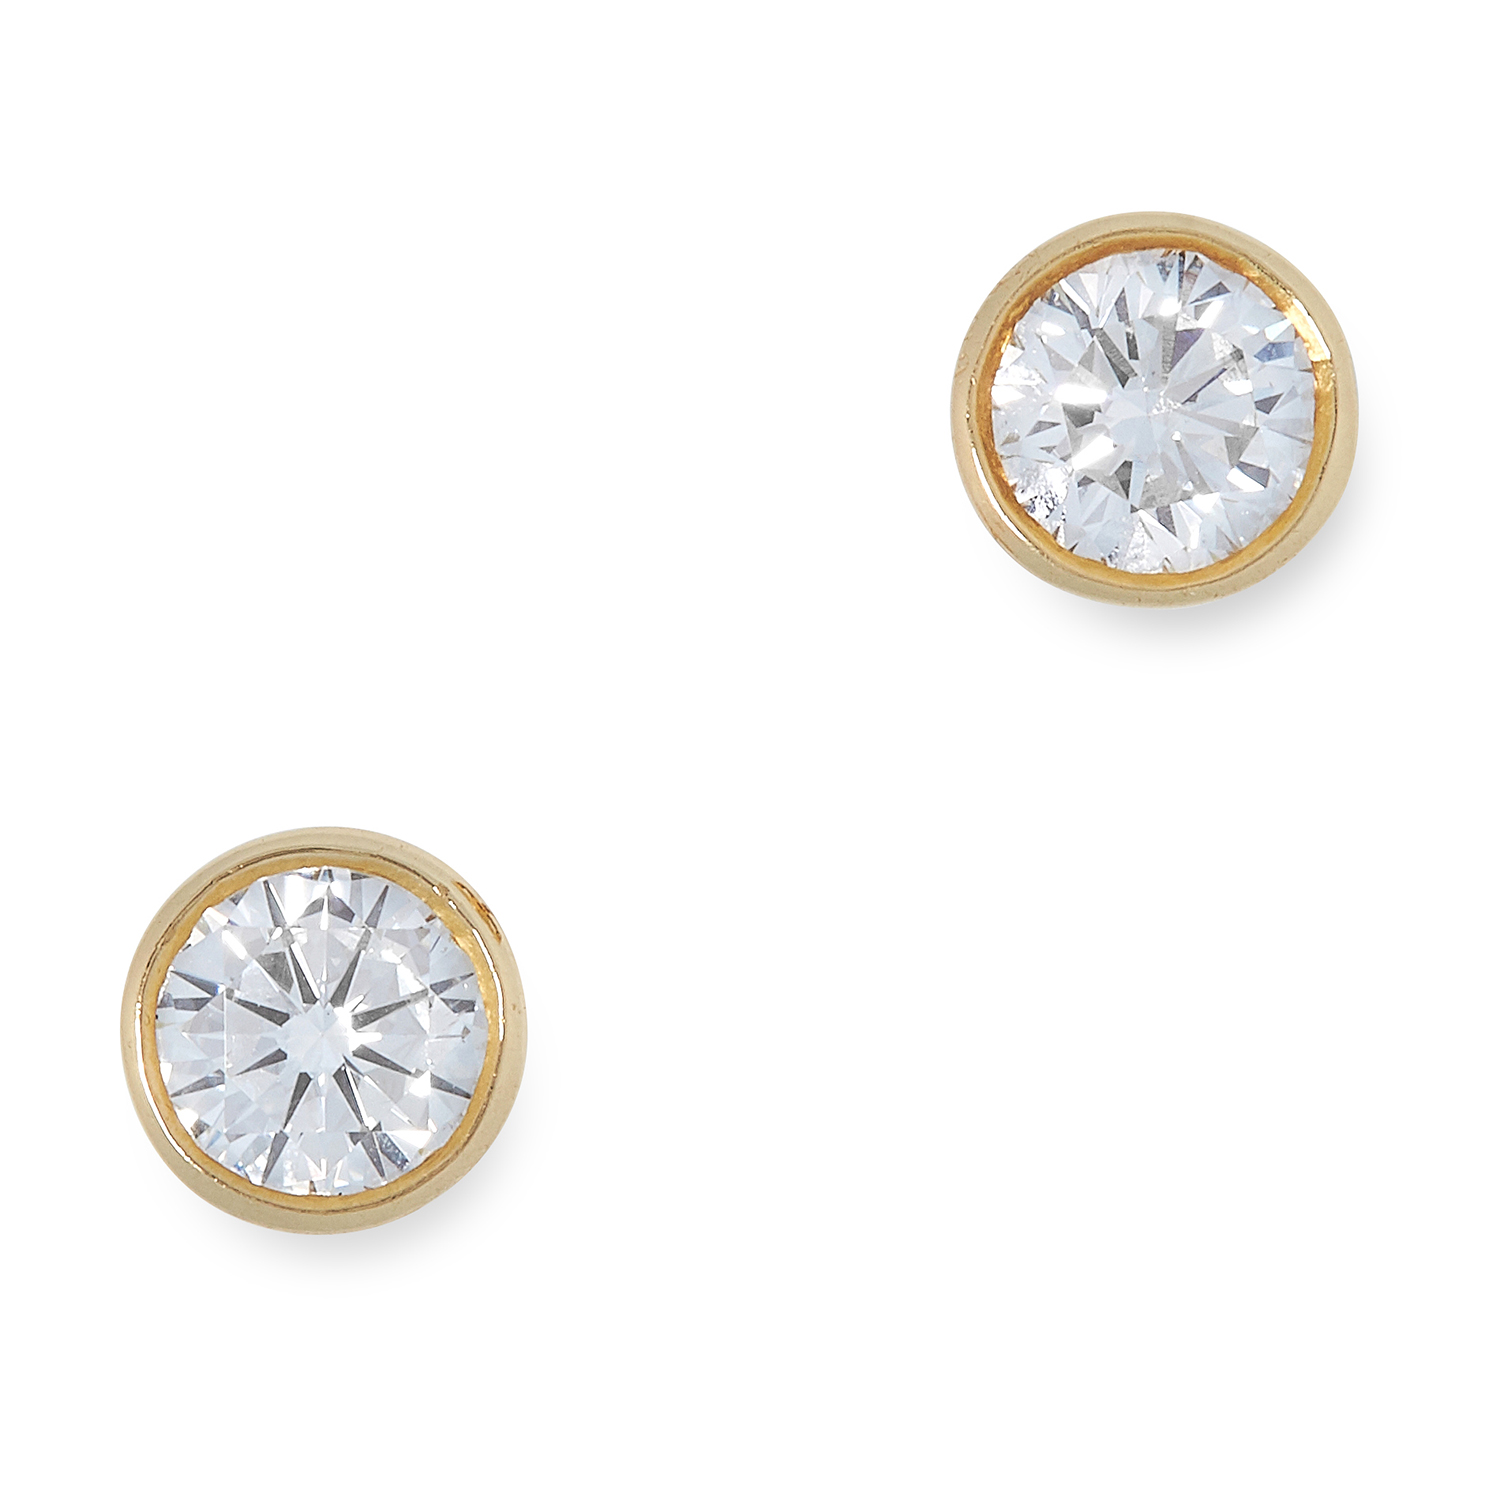 A PAIR OF DIAMOND STUD EARRINGS, BOODLES each set with a round cut diamond, totalling 0.90 carats,